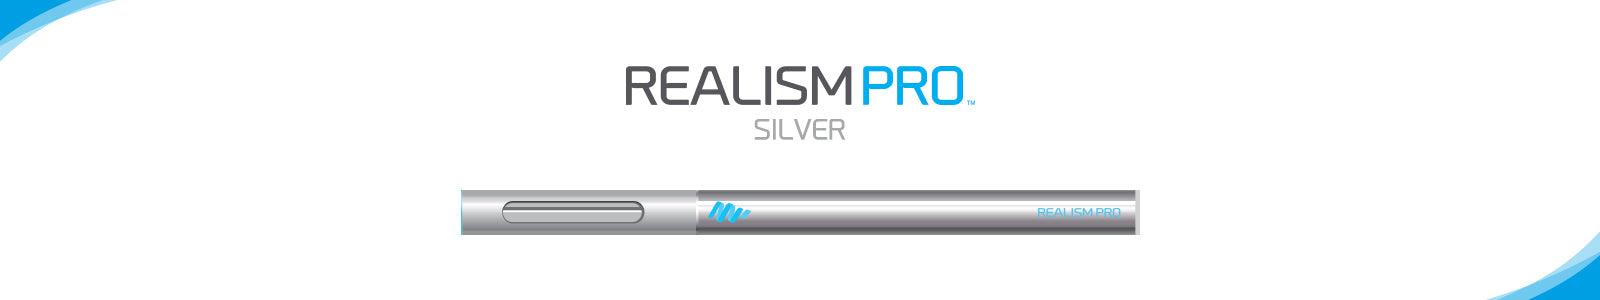 Realism Pro Silver